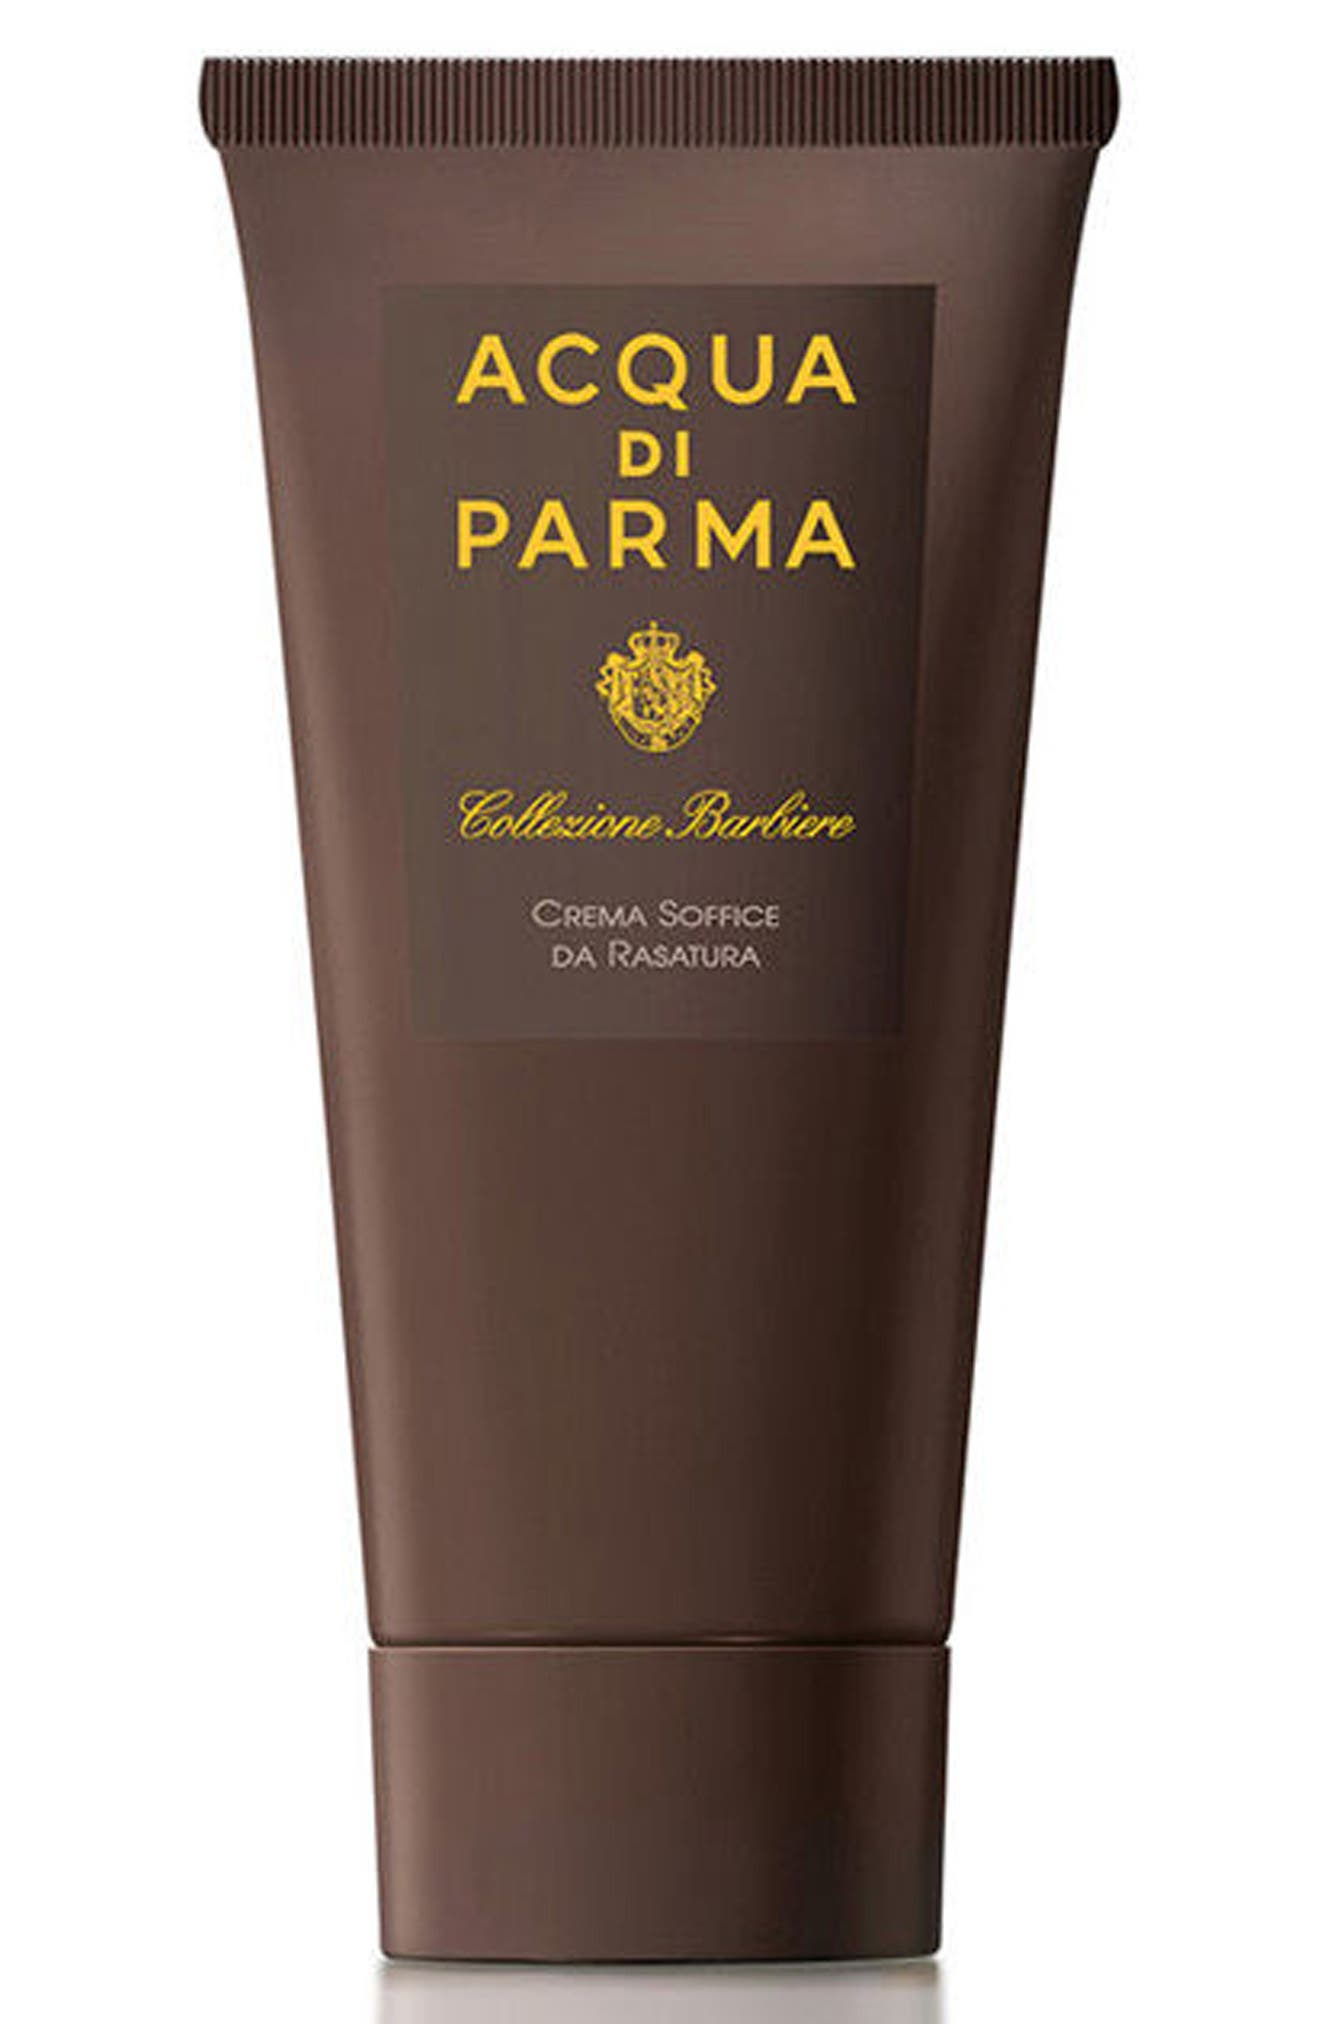 Alternate Image 1 Selected - Acqua di Parma 'Collezione Barbiere' Shave Cream